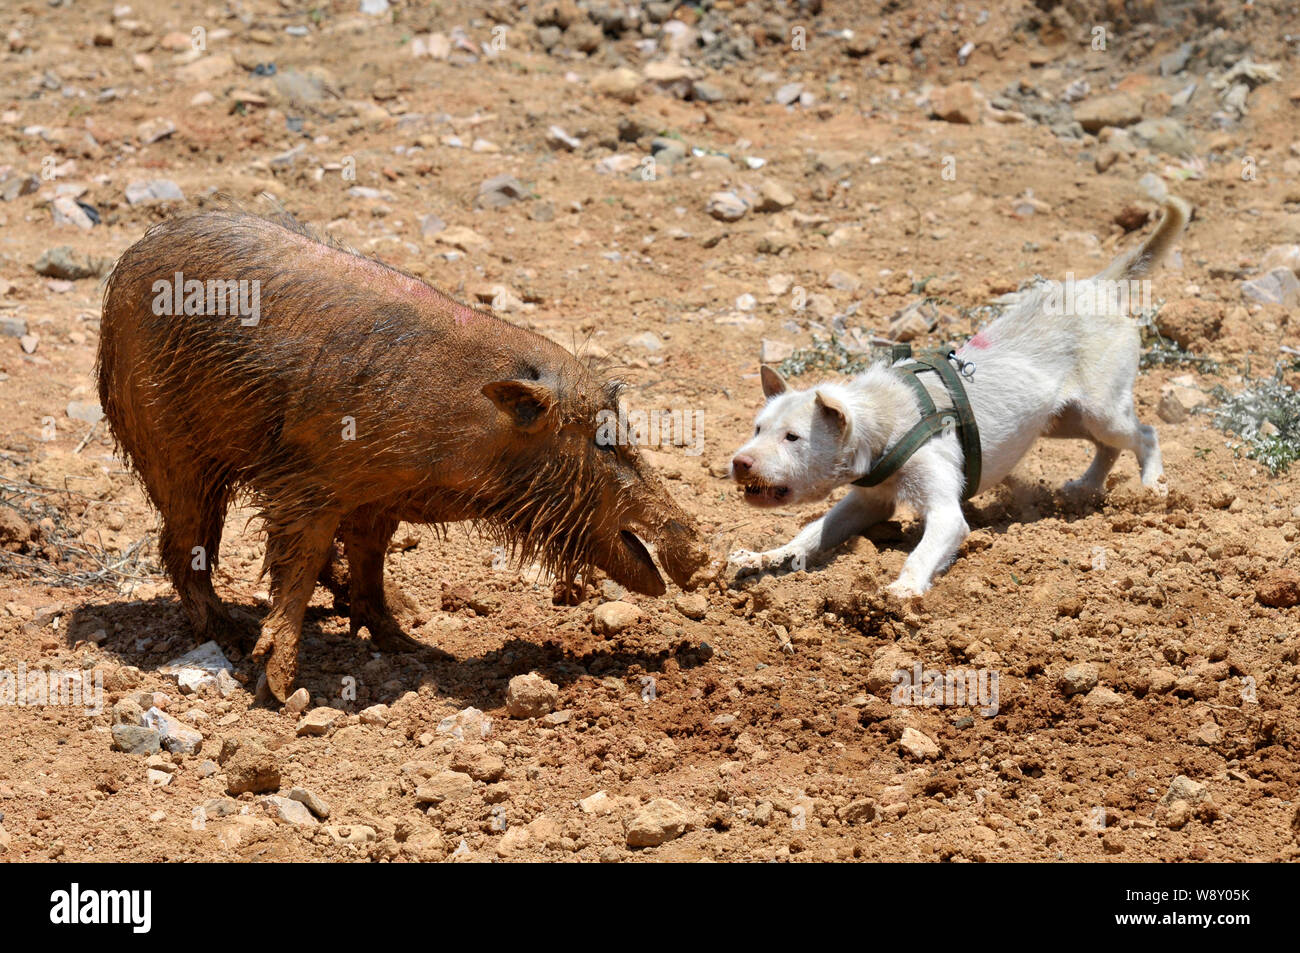 A Xiasi dog, right, fights a wild boar during a dog vs boar